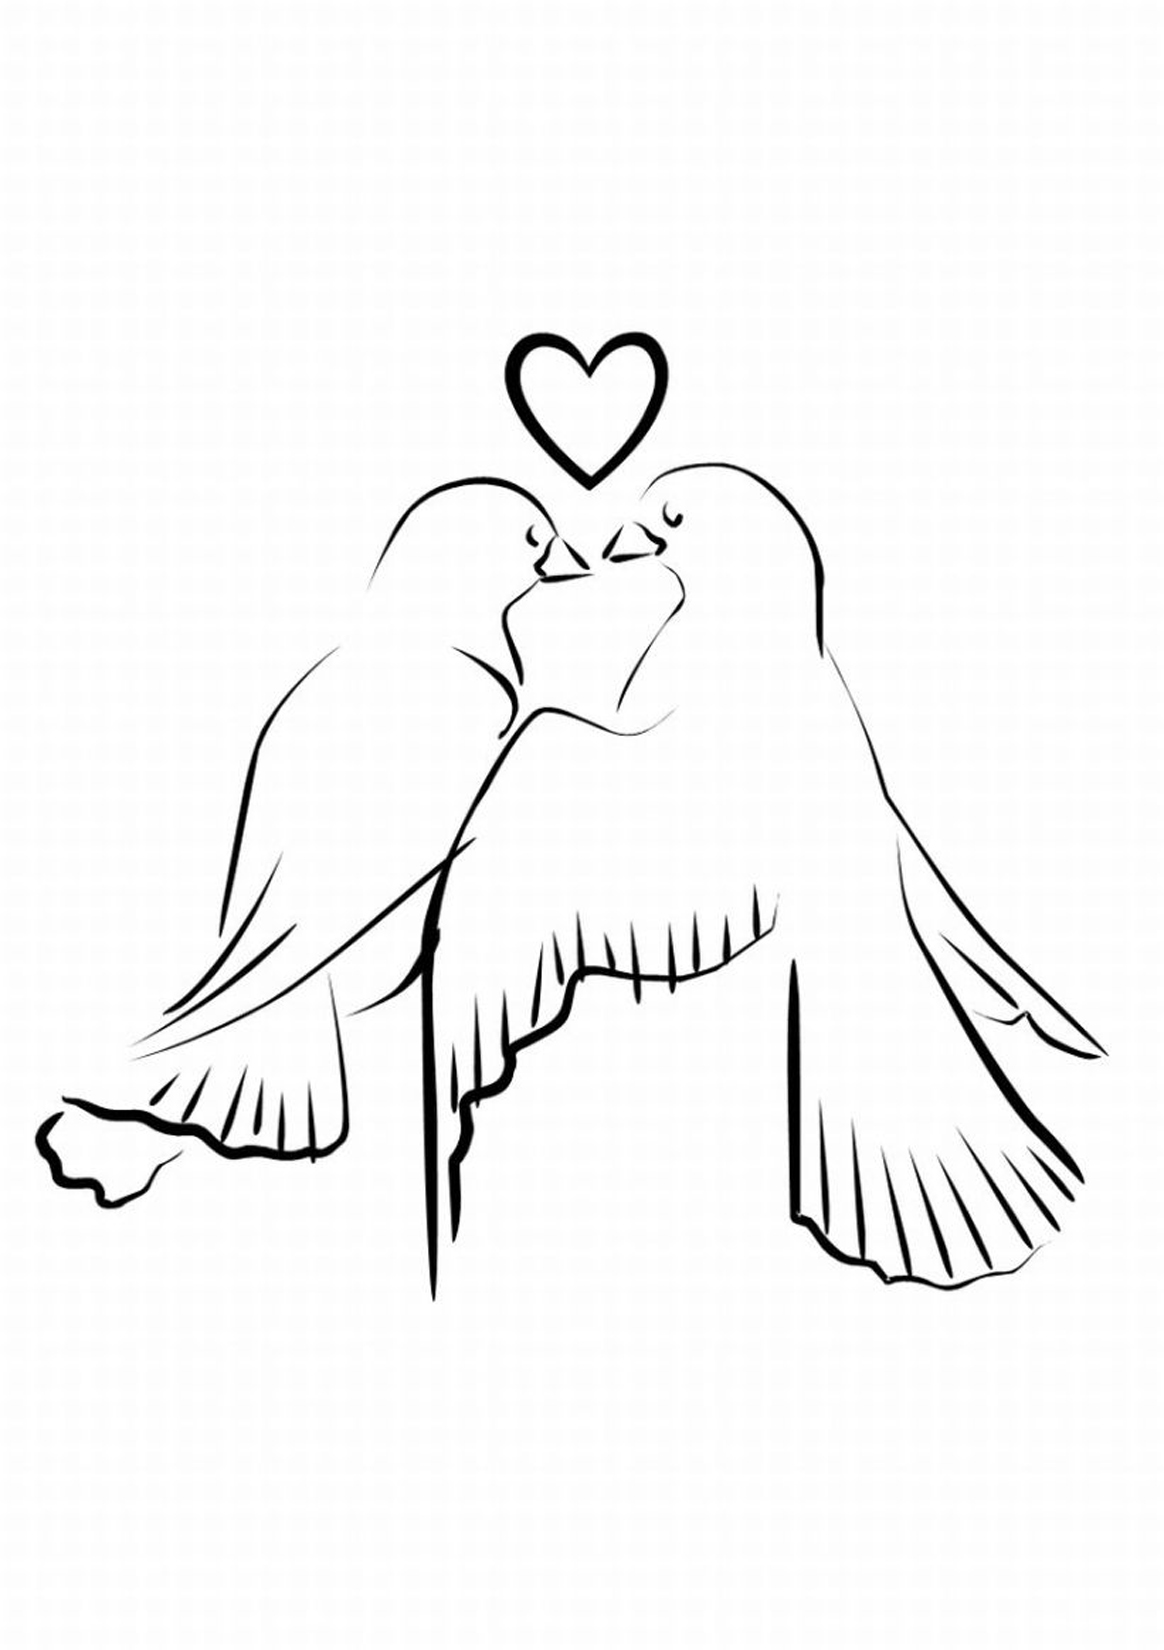 Love Doves Free Clipart.